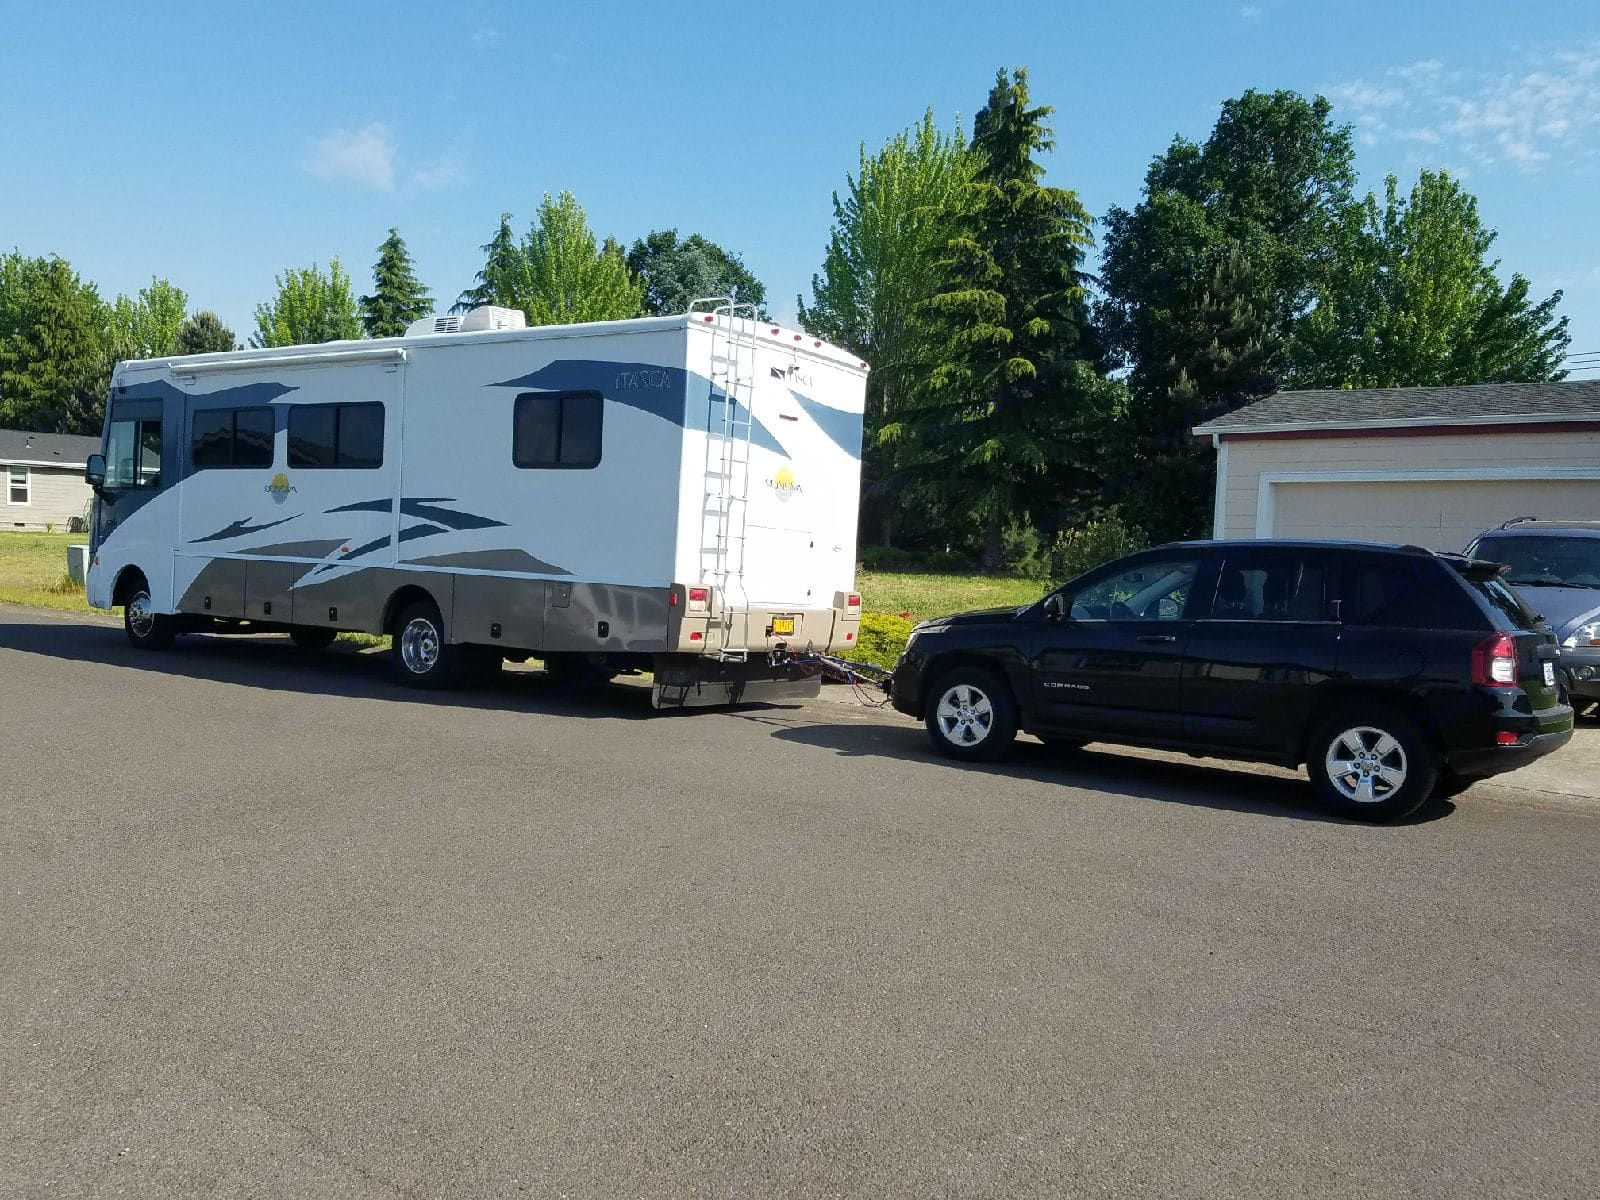 2014 Jeep Compass (manual transmission) pulled behind our 2008 Itasca Sunover 30' Class A RV.. Jeep Compass 2014